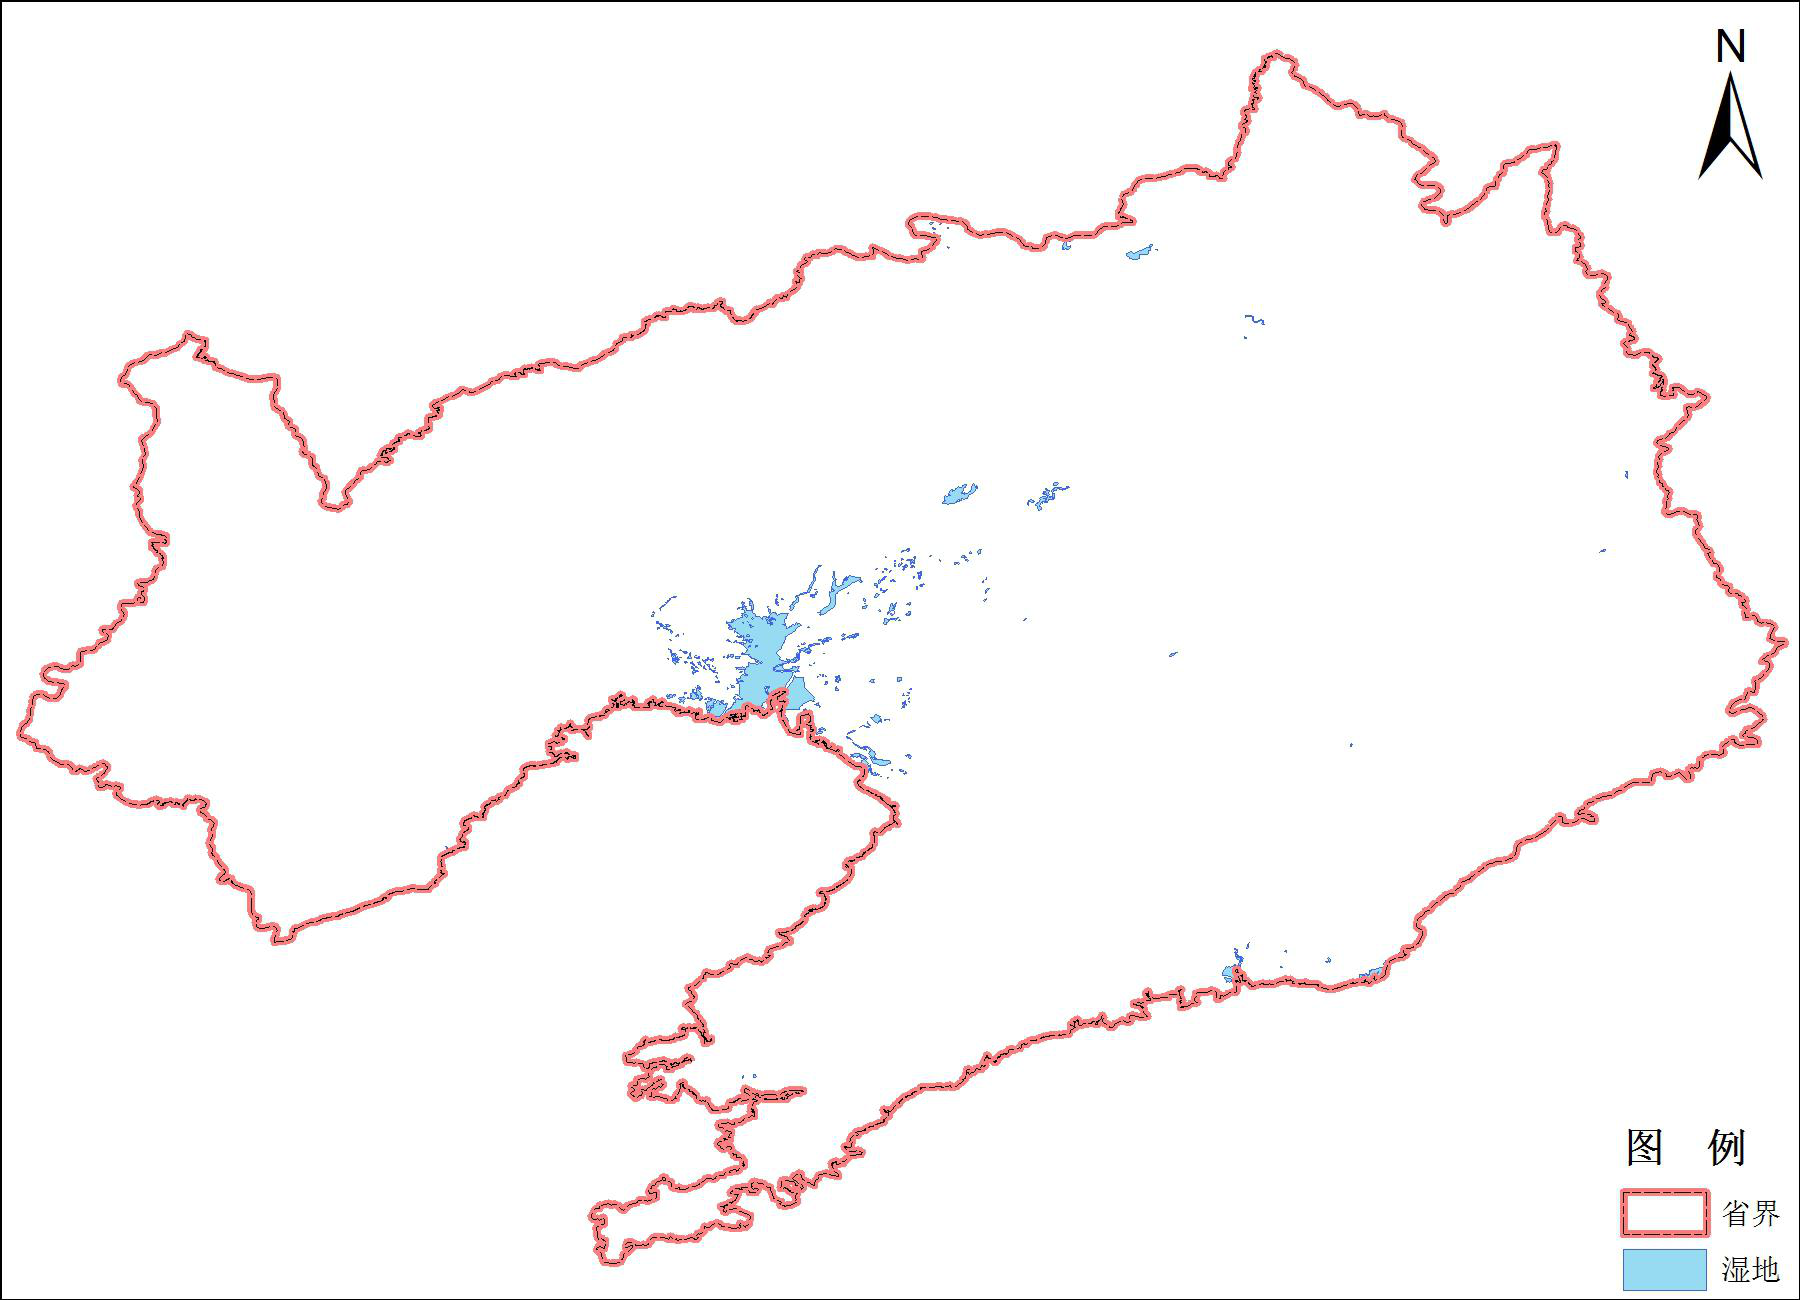 1:1 million wetland data of Liaoning province (2000)